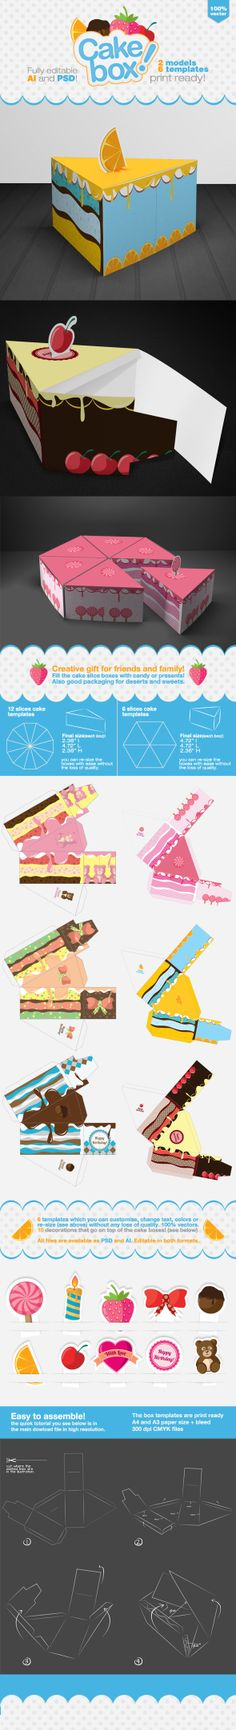 Cake Packaging Gift Box on Behance